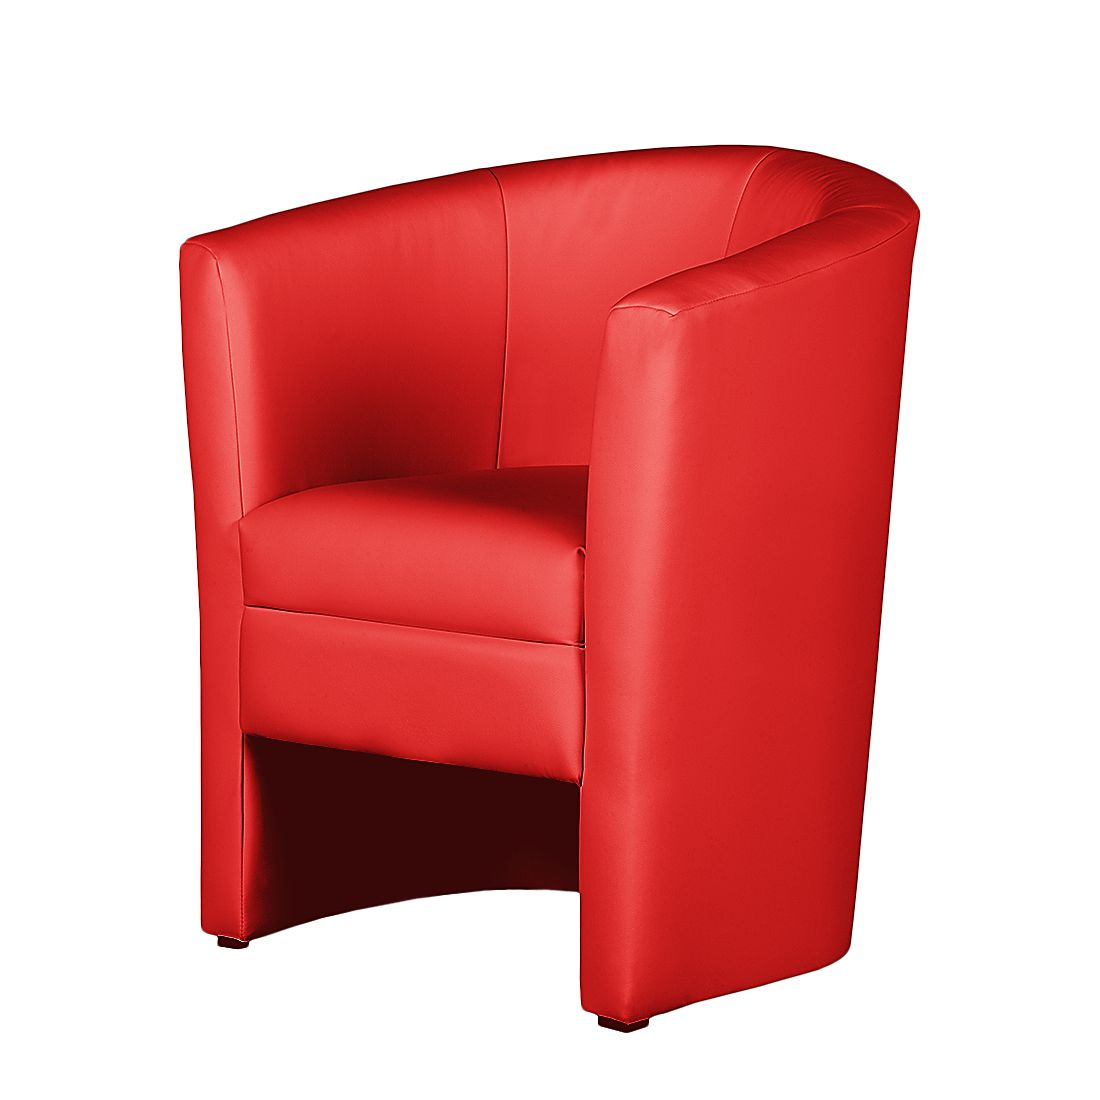 Fauteuil Sinclair I - Imitation cuir - Rouge, Fredriks